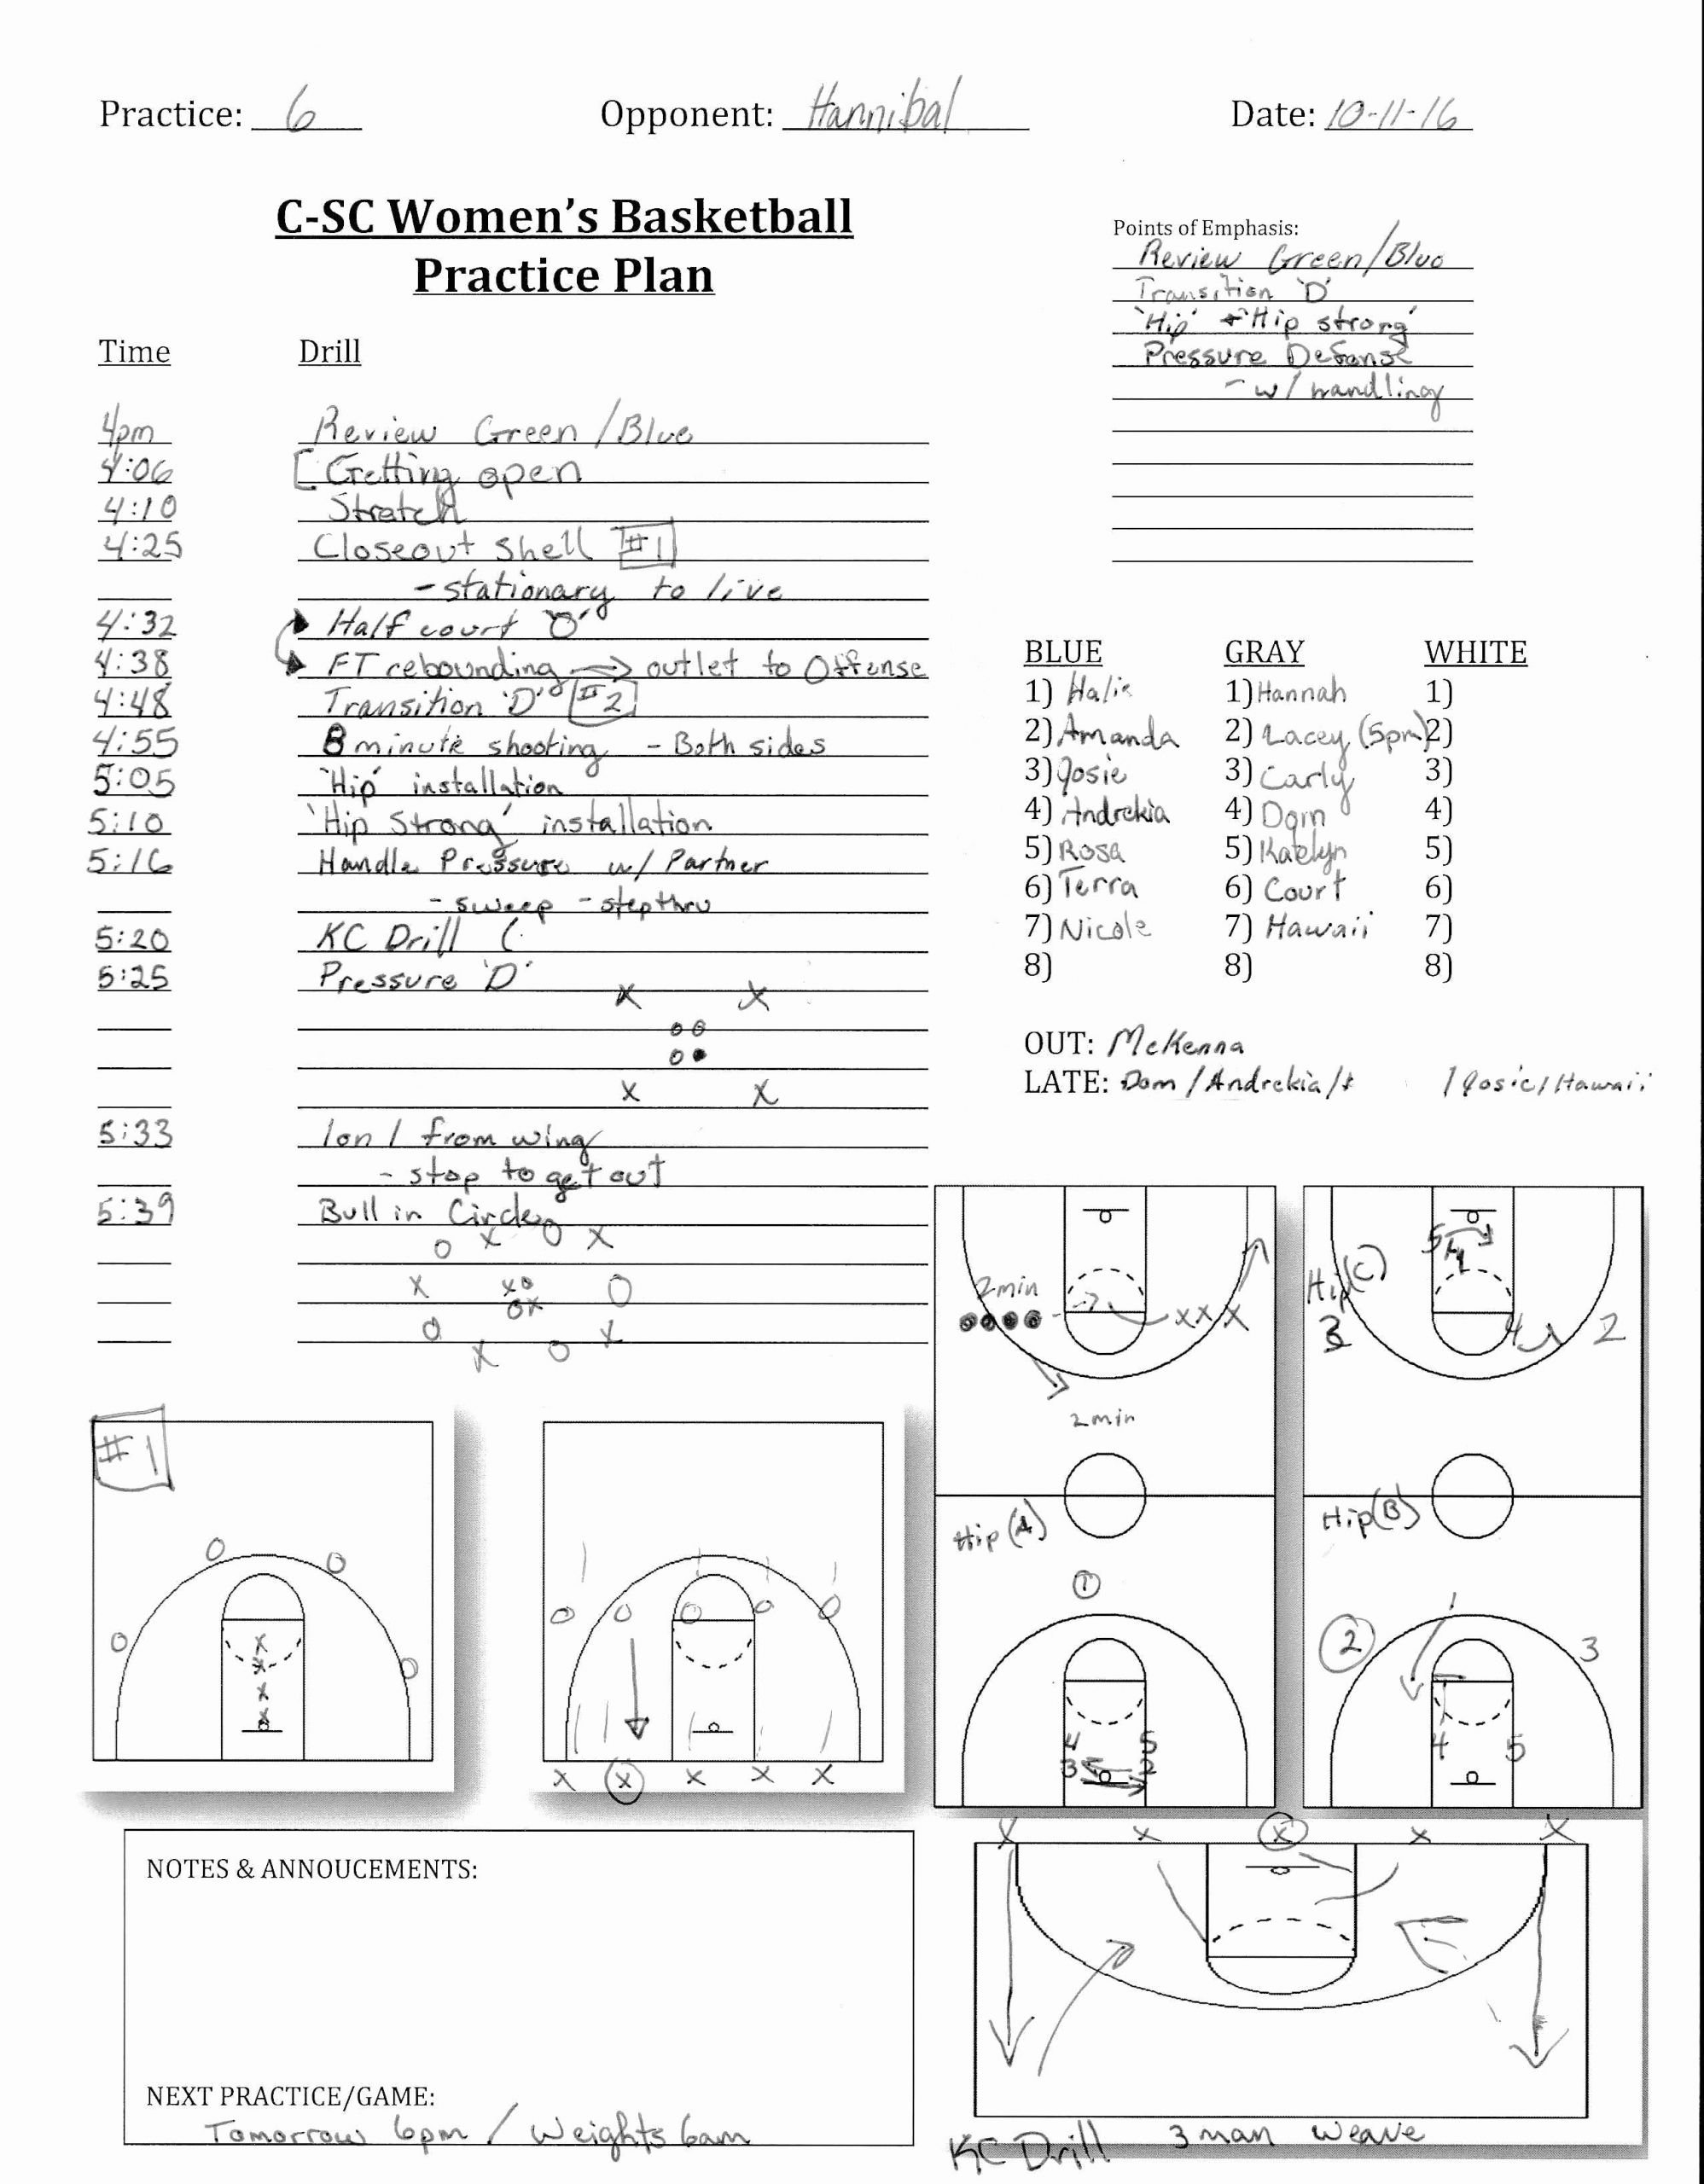 Practice Plan Template Basketball New Midwest Elite Basketball Culver Stockton Wbb Practice Plan